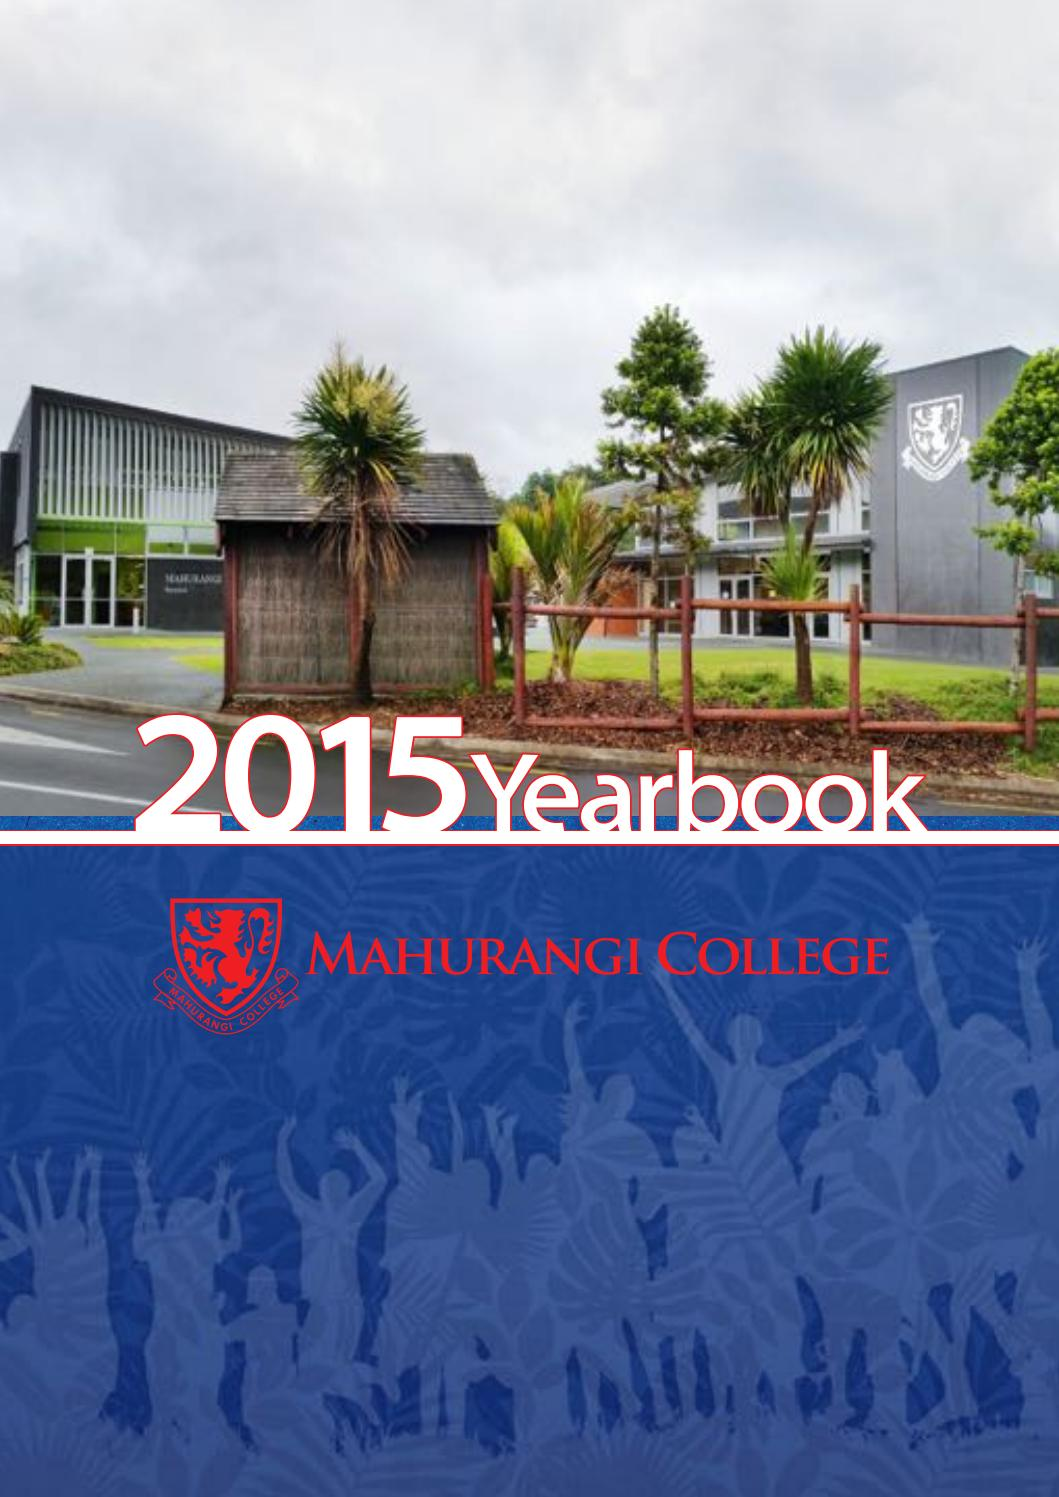 69ca94fa4f1 Mahurangi College Yearbook 2015 by Mahurangi College - issuu